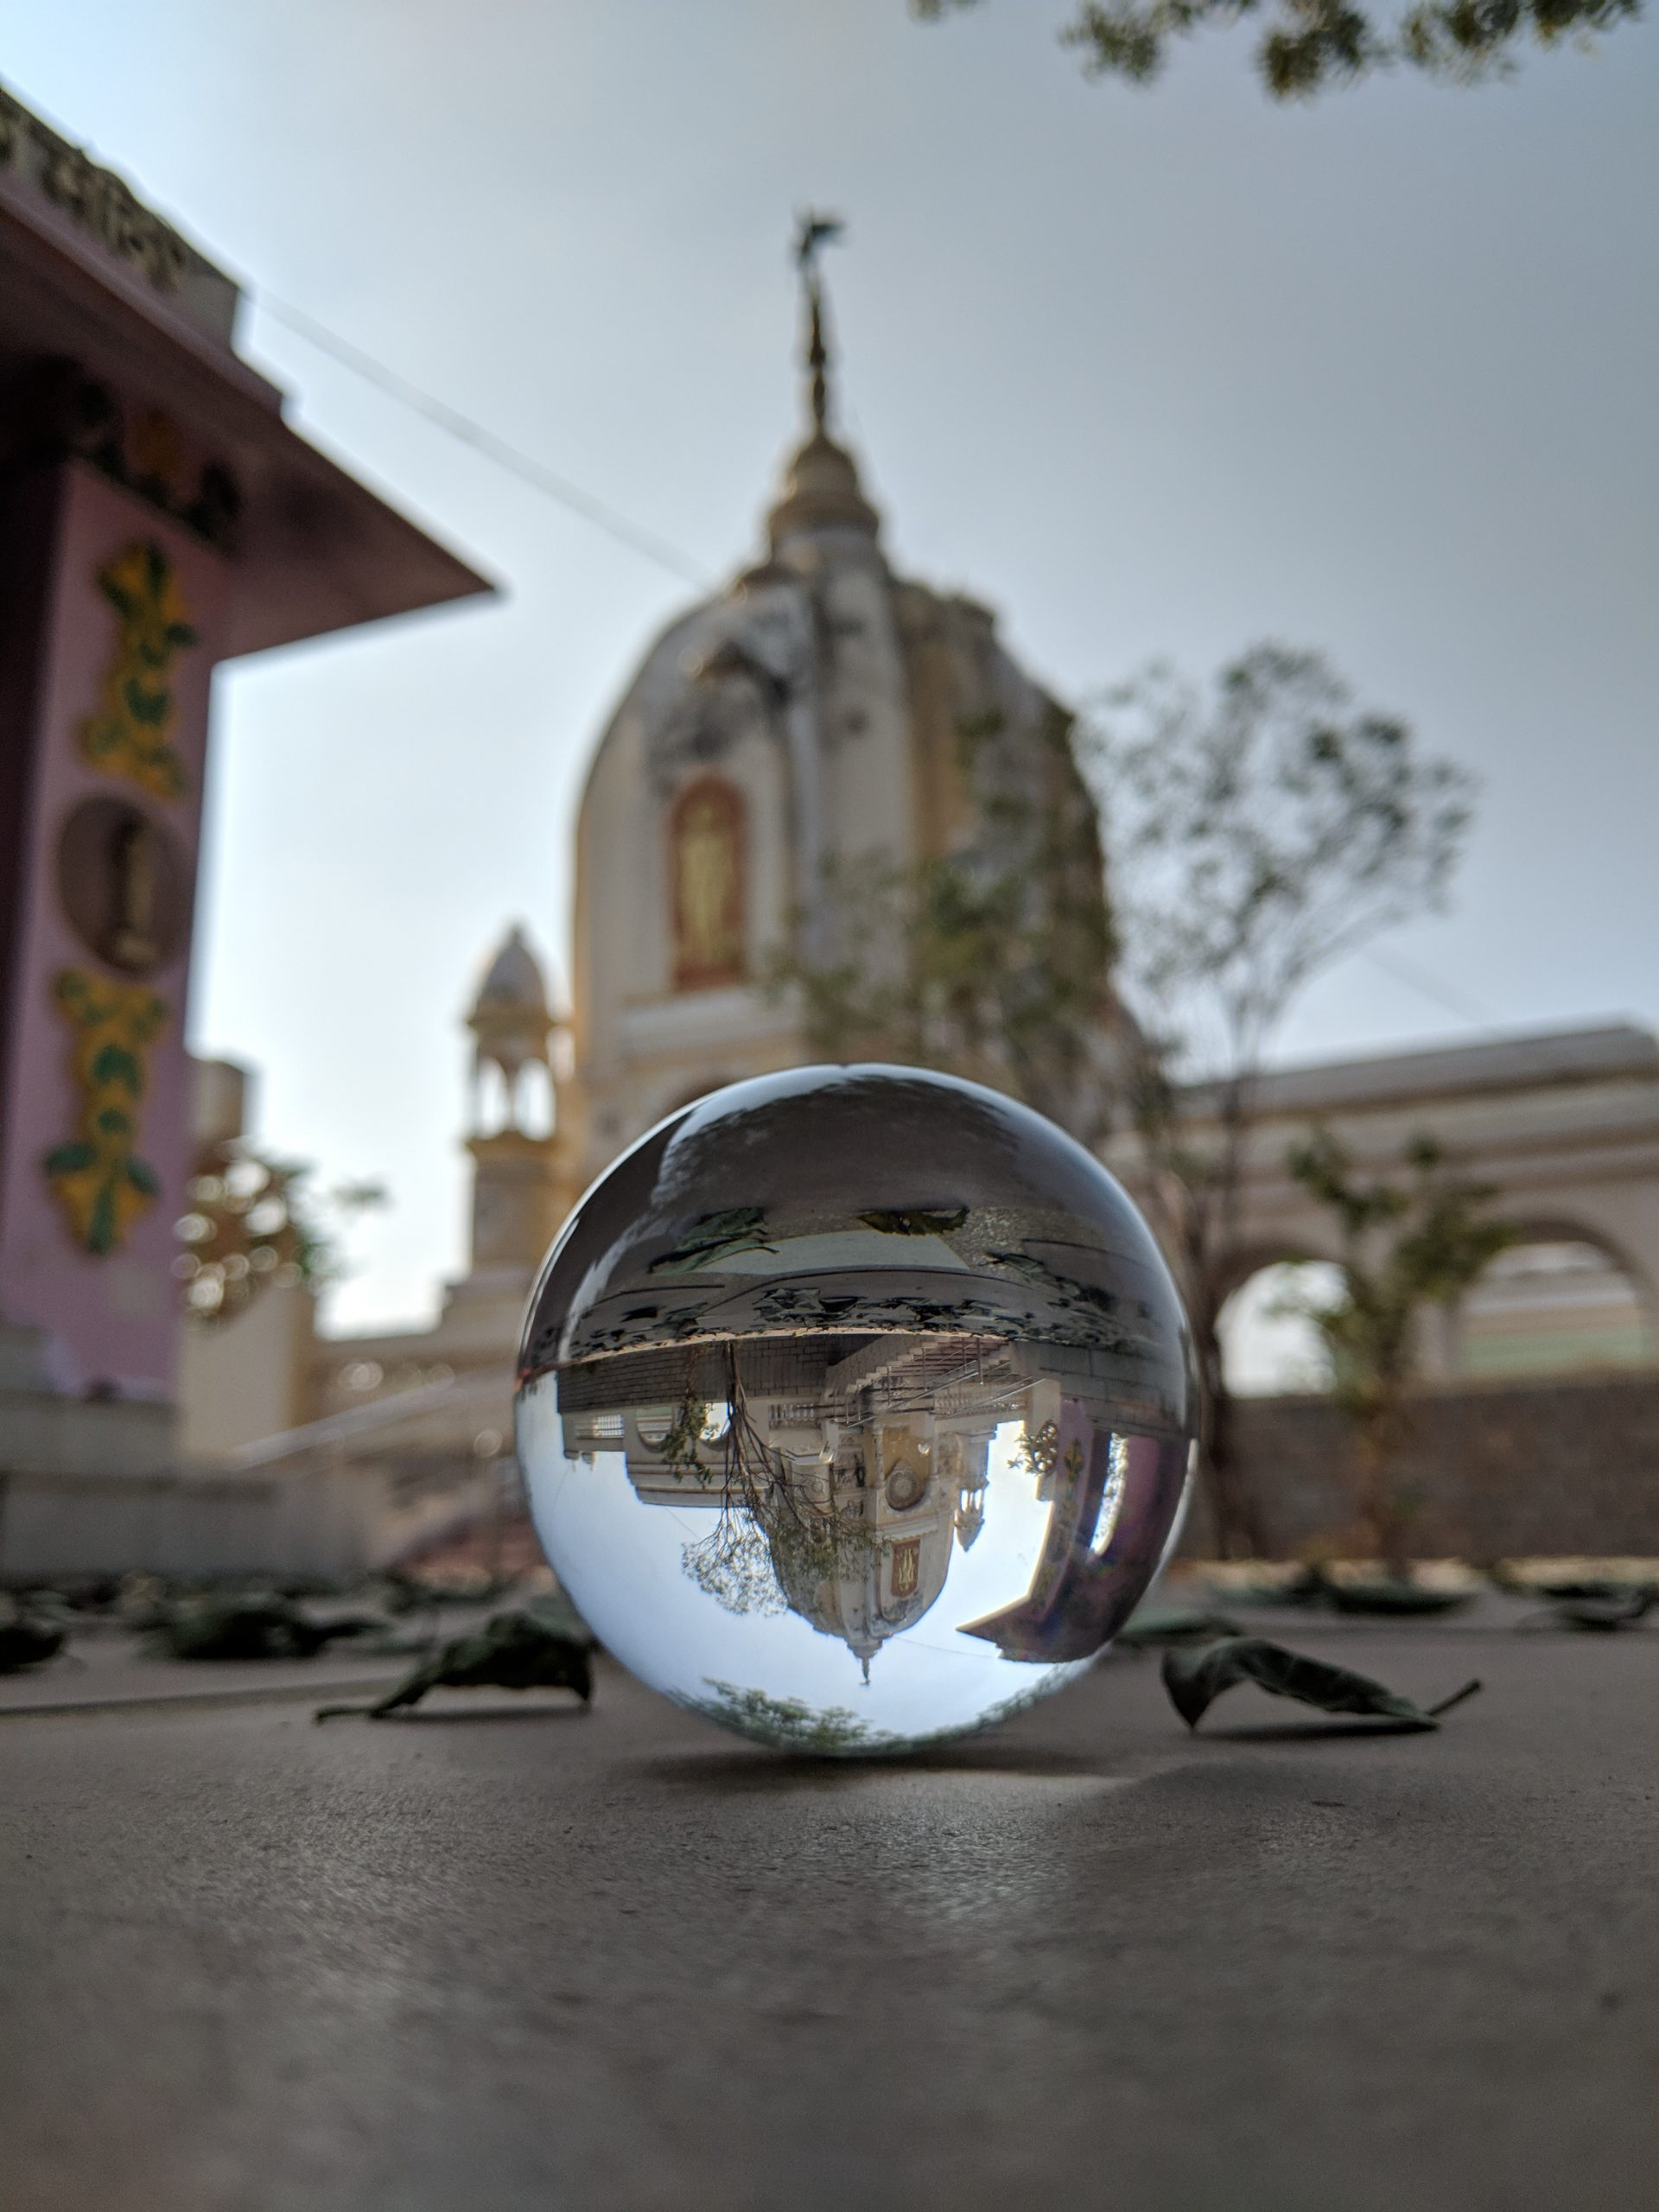 A reflection of a temple in a lensball